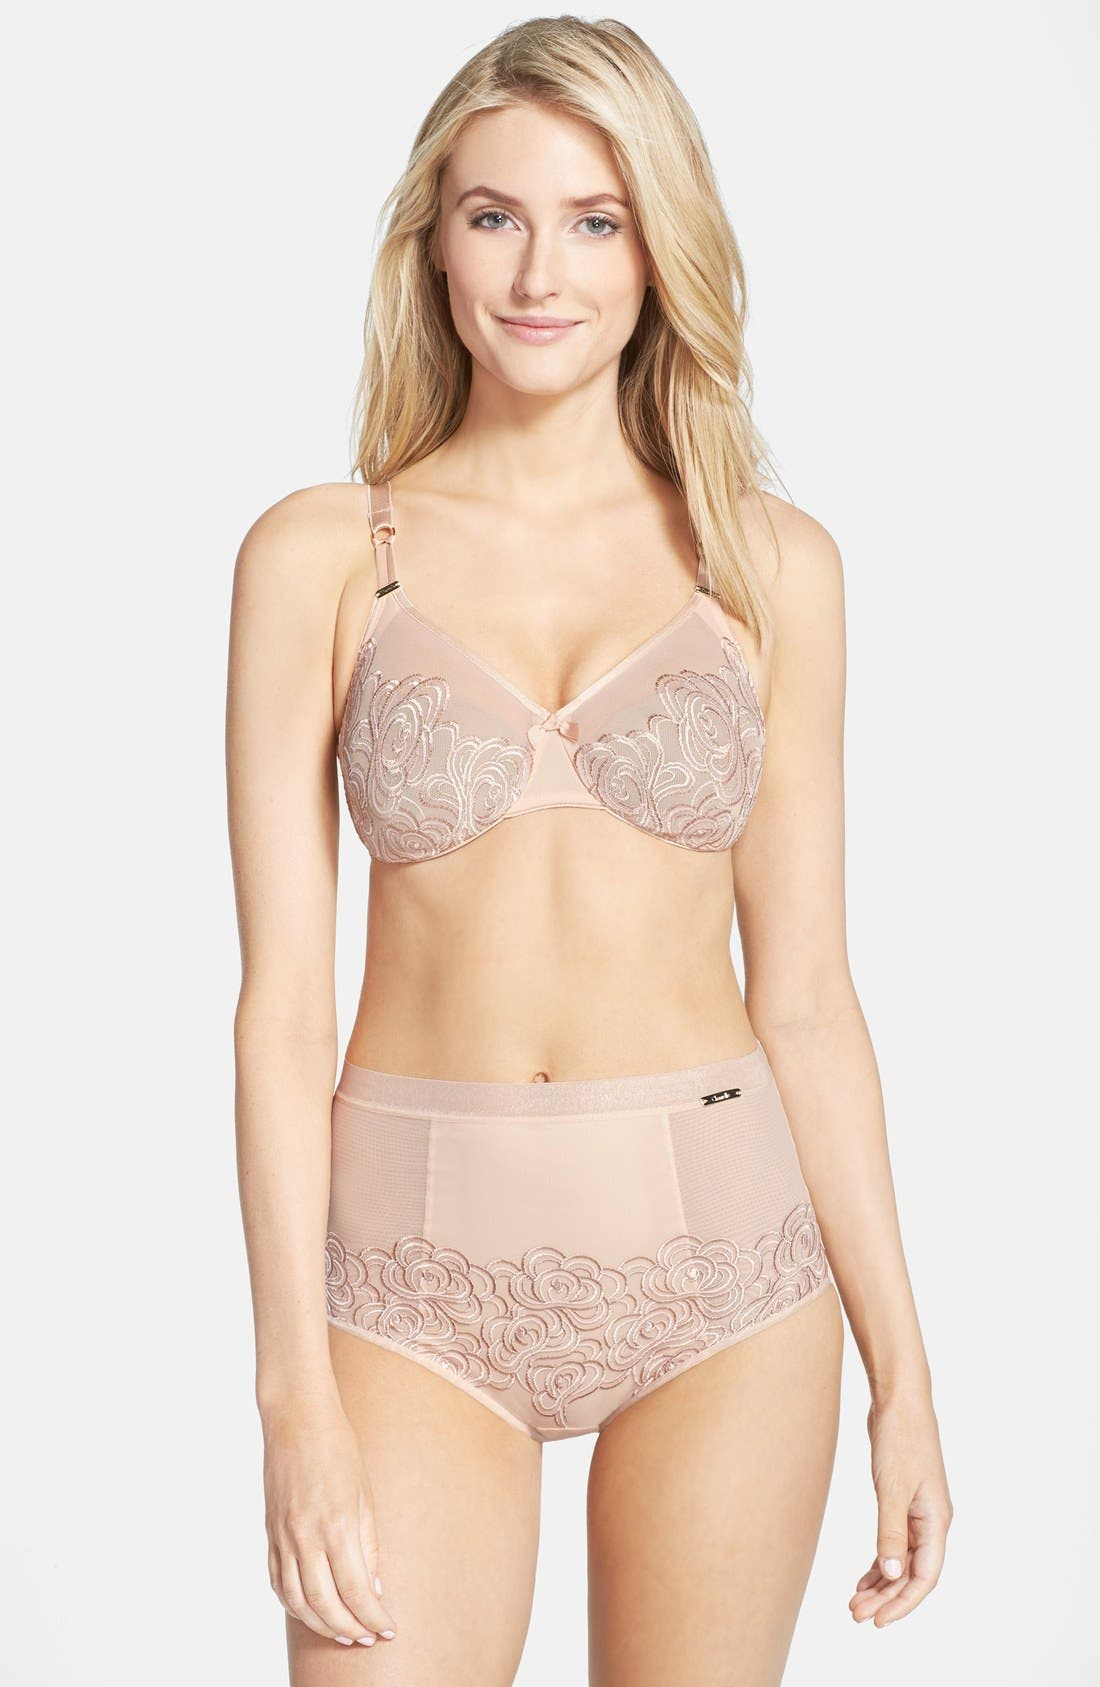 Alternate Image 2  - Chantelle Intimates 'Barocco' Embroidered Sheer Underwire Molded Bra (D-Cup & Up)